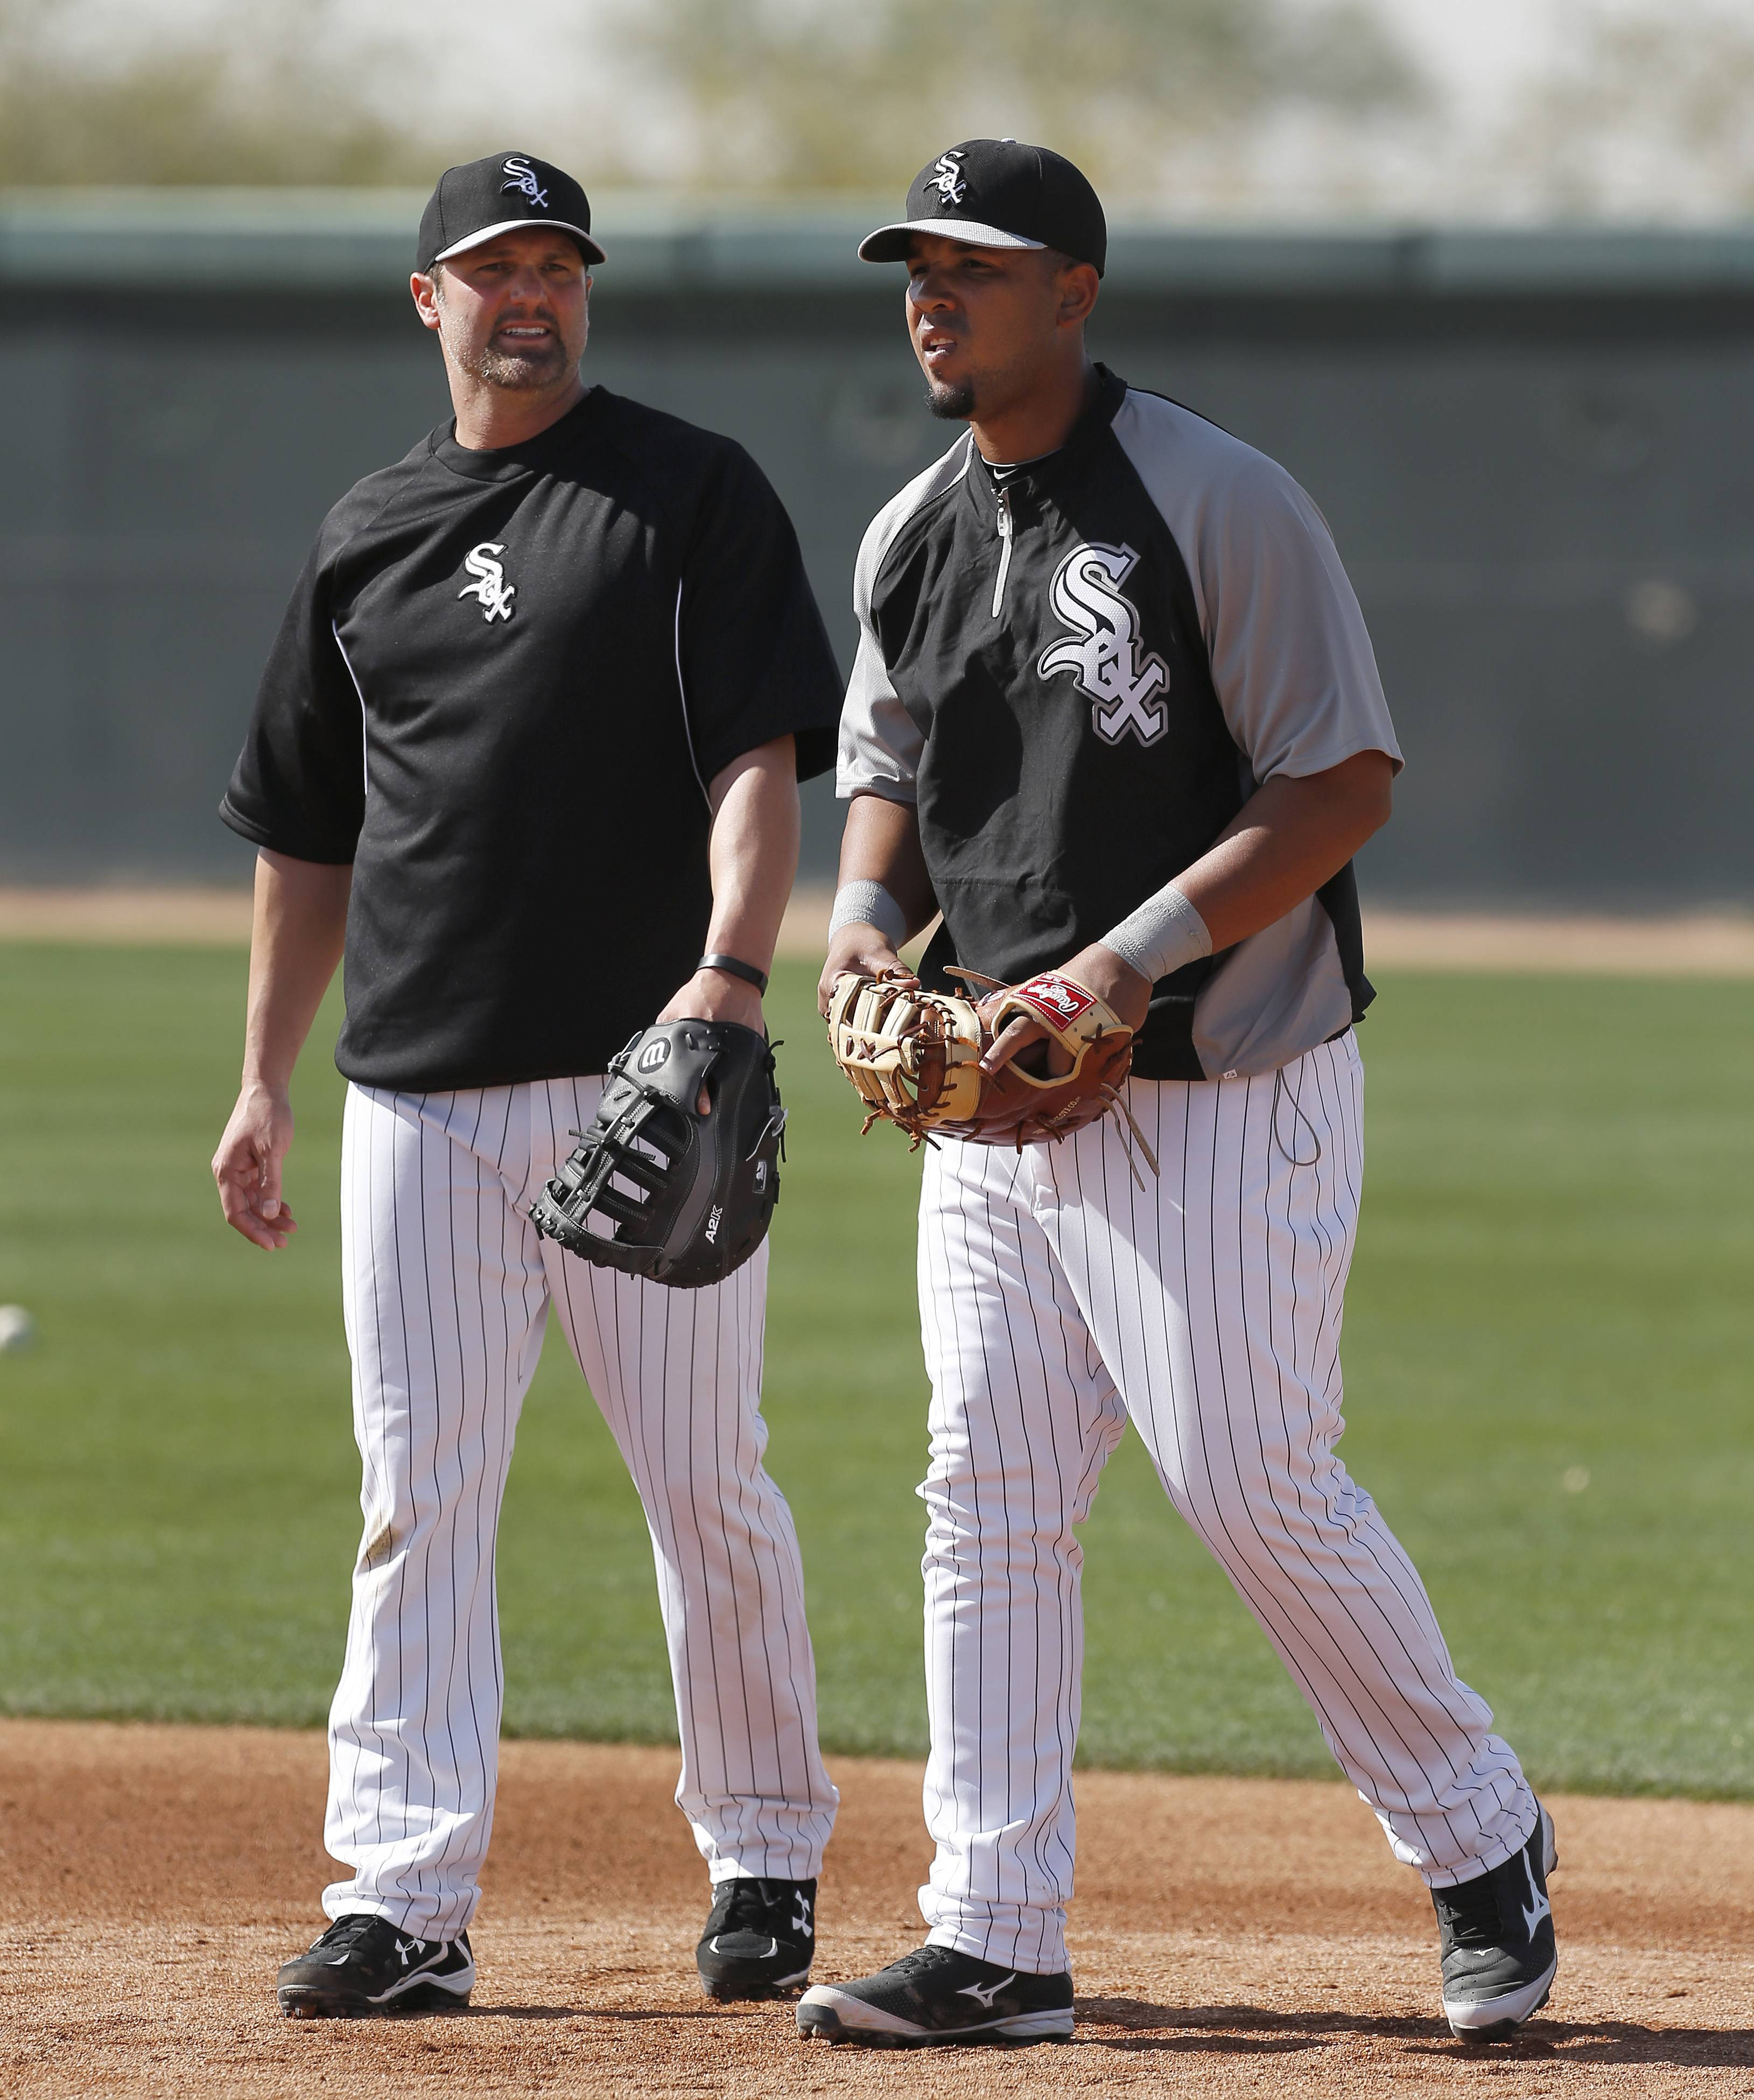 White Sox veteran Paul Konerko, left, is doing all he can this spring to help younger players such as first baseman Jose Abreu.